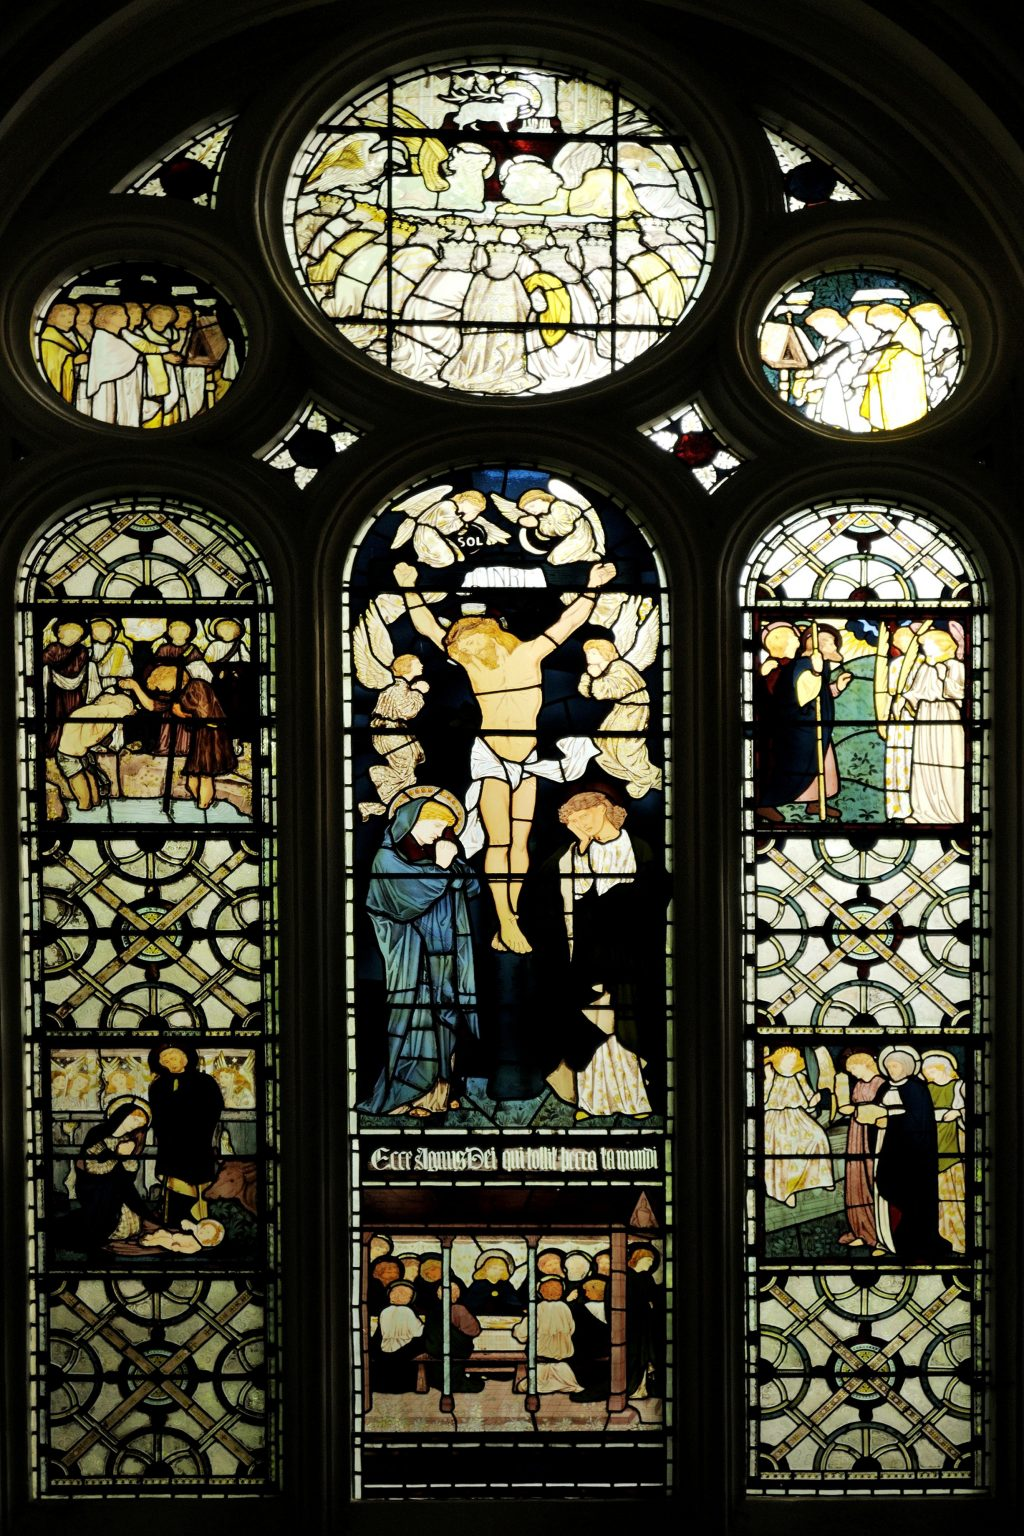 The East Window, by William Morris